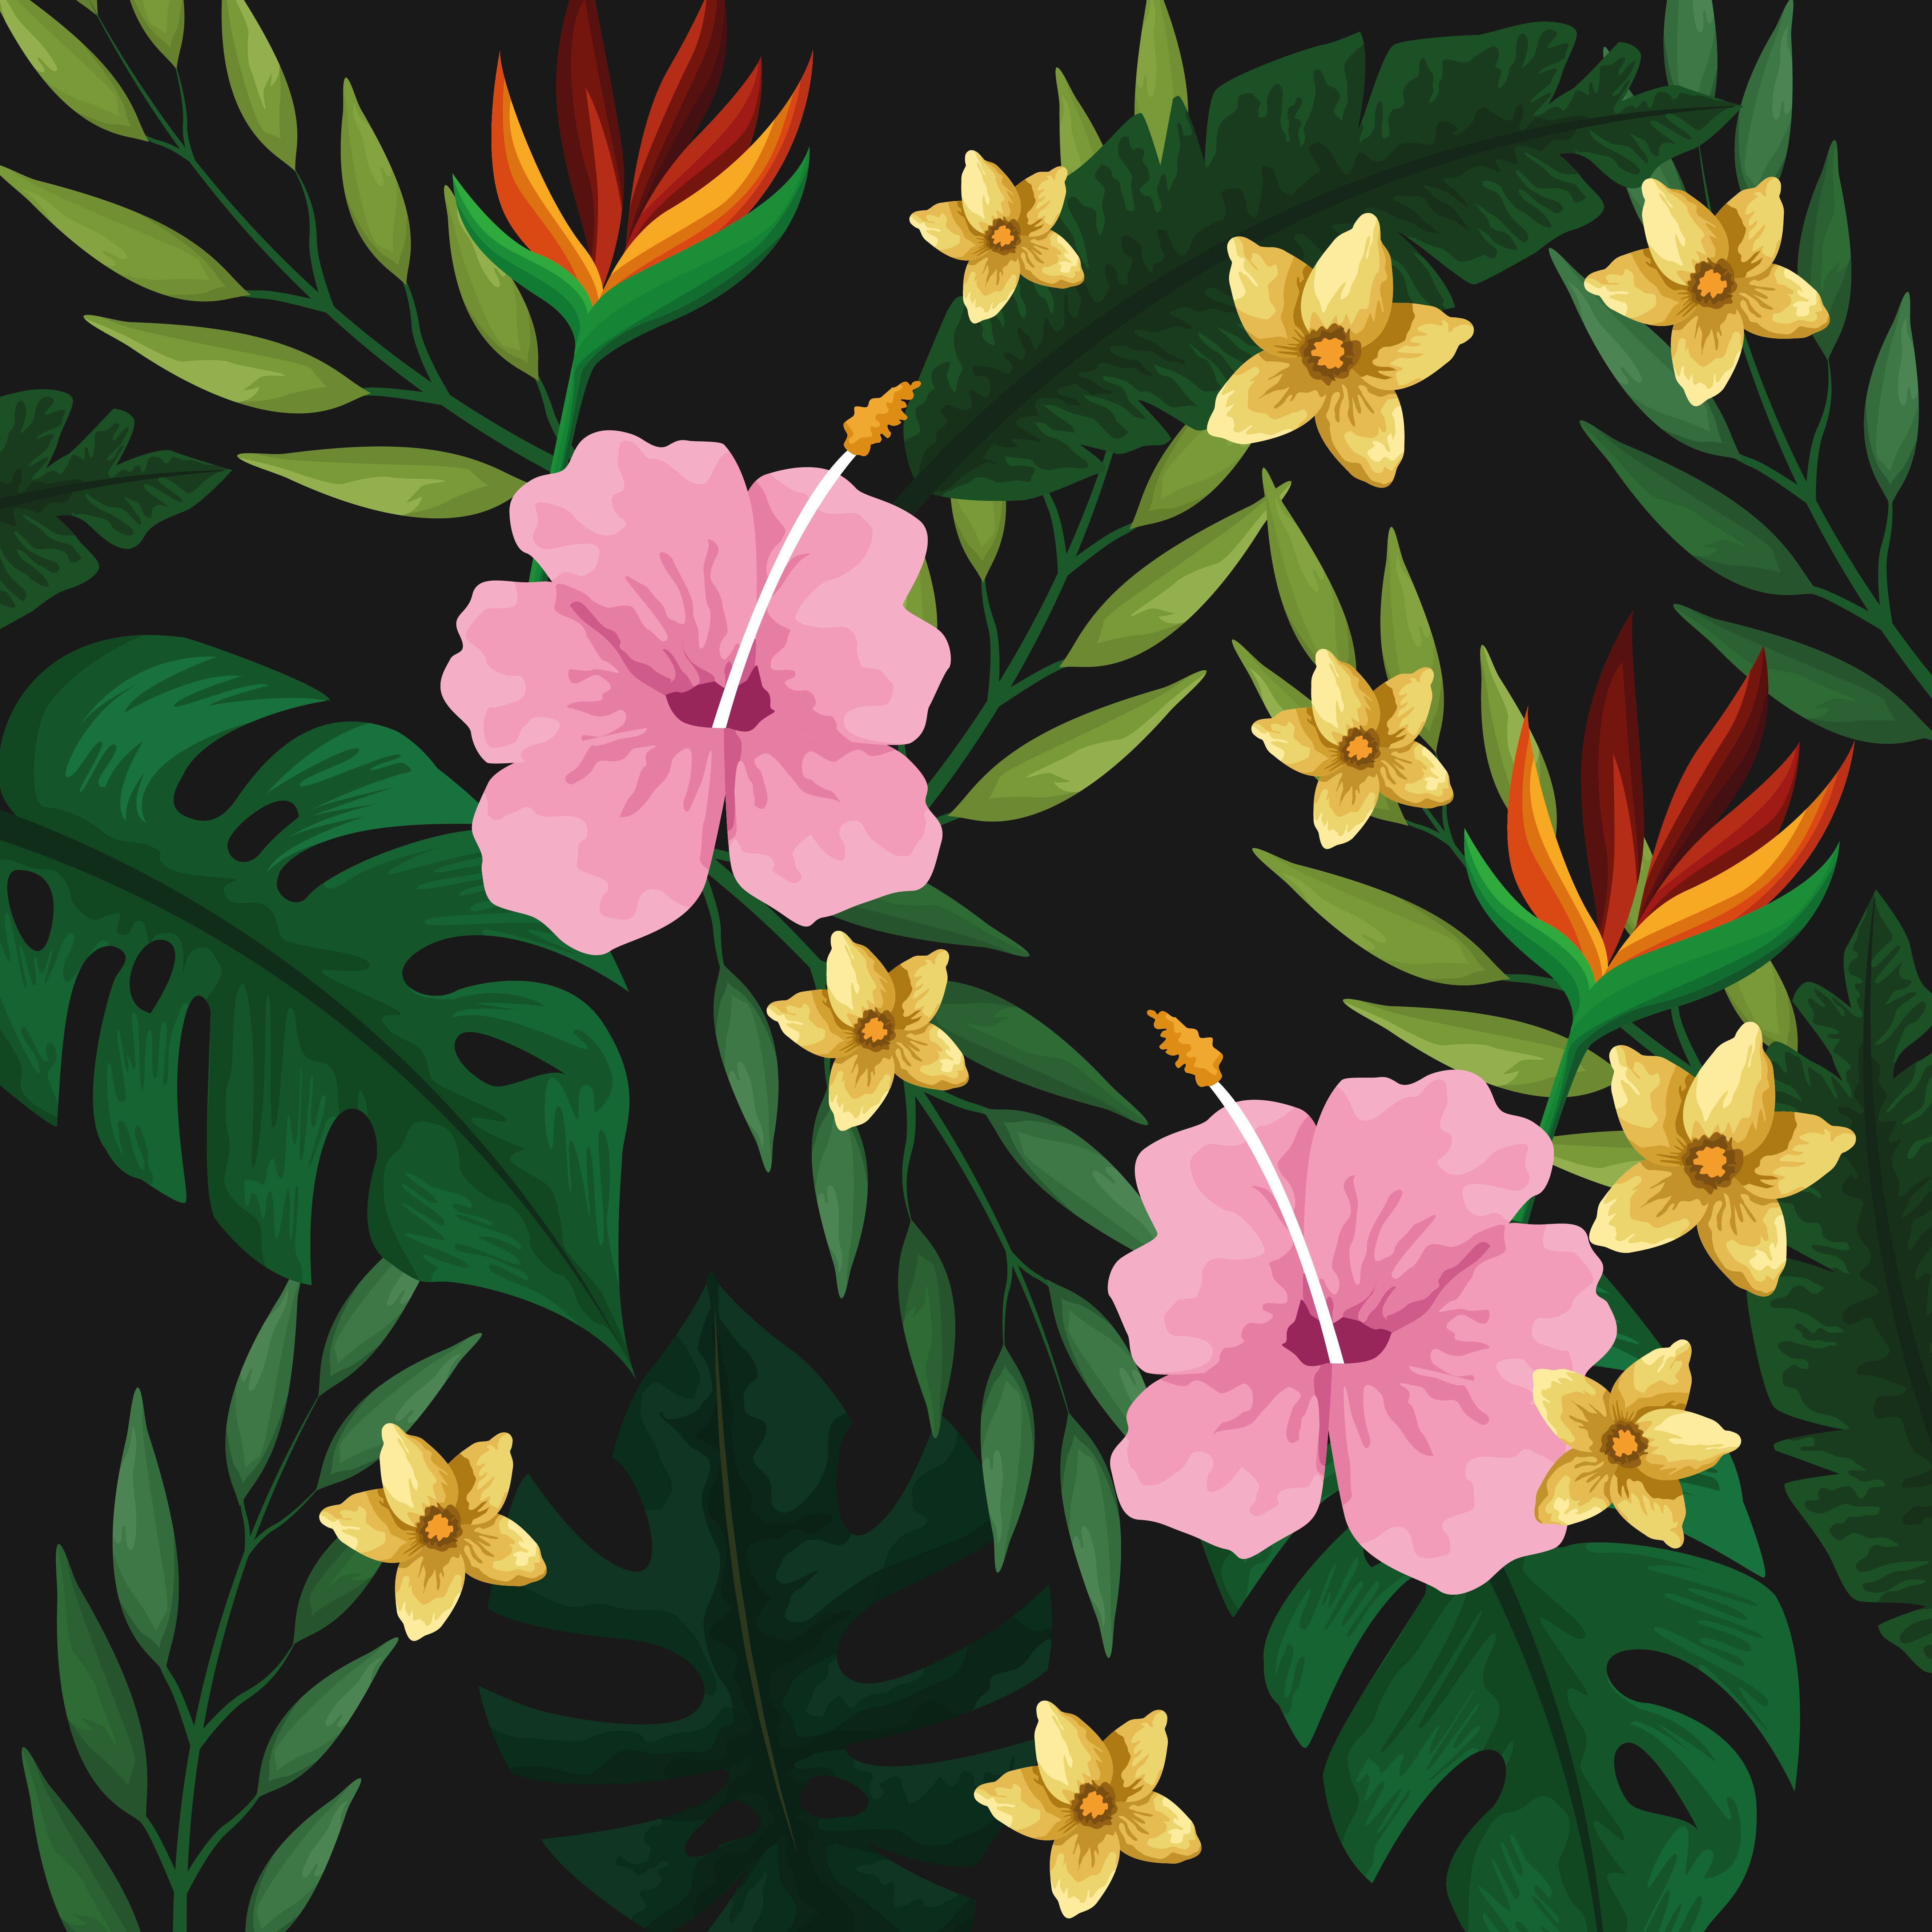 Tropical Leaves And Flowers Background Pattern Download Free Vectors Clipart Graphics Vector Art Flowers leaves tropical tropical leaves tropical flowers flowers leaves green leaves high definition picture leaf background close up dew beautiful plants flower petals autumn tulips high definition. vecteezy